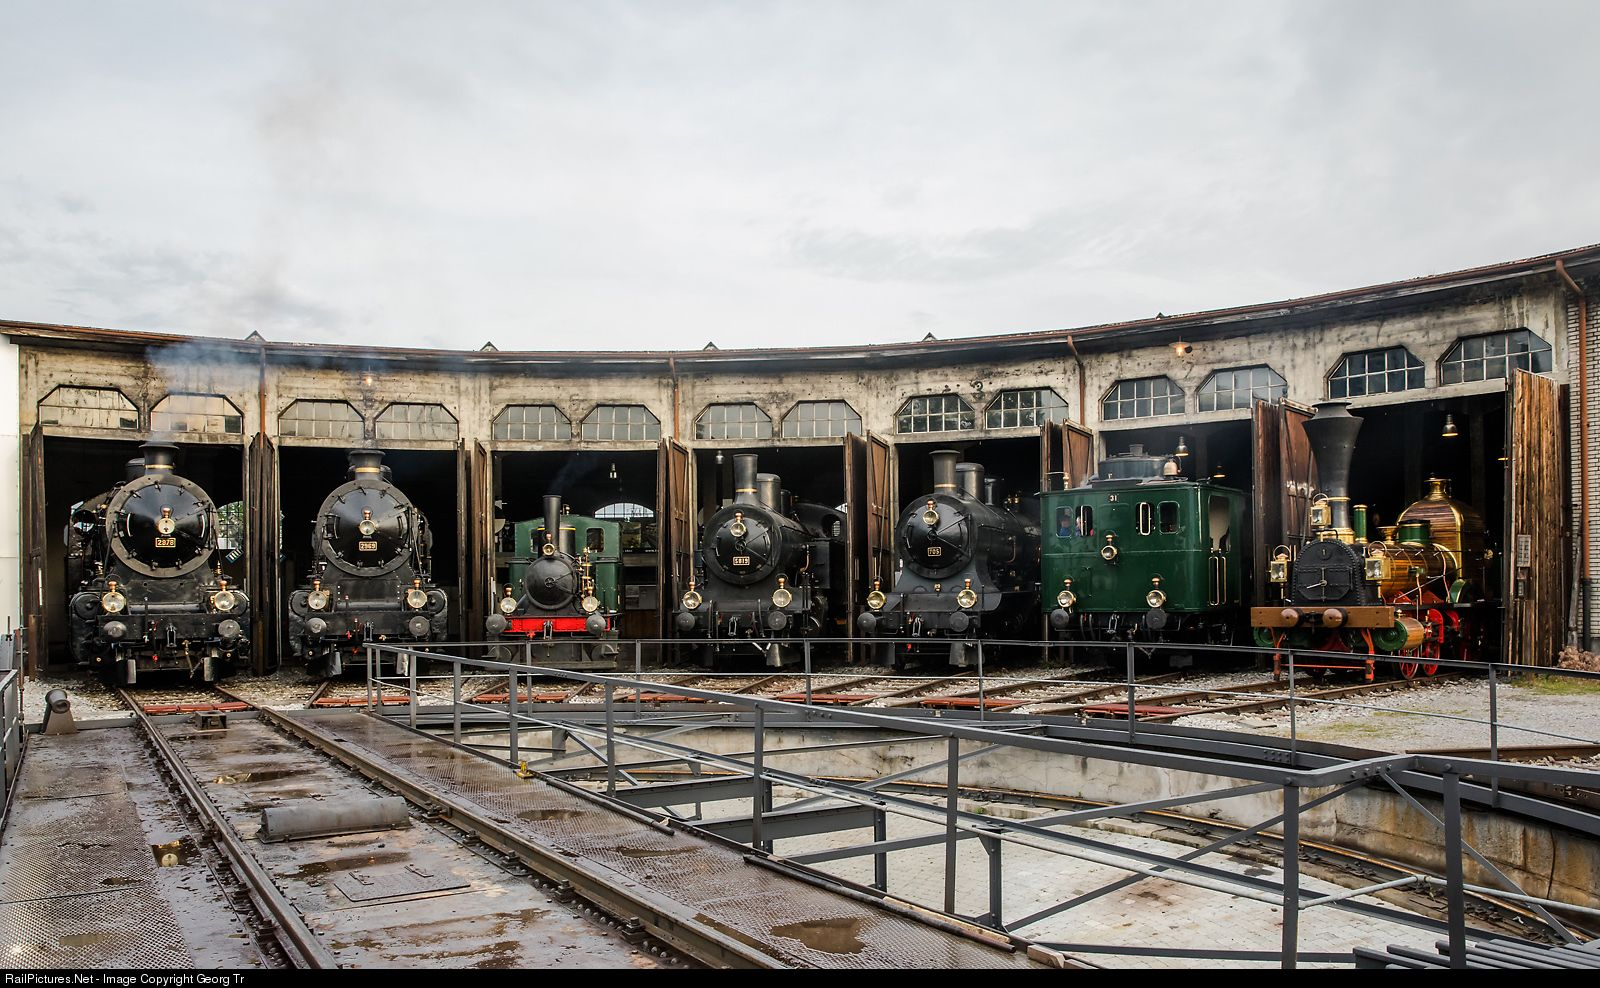 2978, 2969, 1, 5819, 705, 31, 1 SBB Historic C 5/6, E 2/2, Eb 3/5, A 3/5,  CZm 1/2, D 1/3 at Brugg (AG), Switzerland by G…   Locomotives and  Turntables.